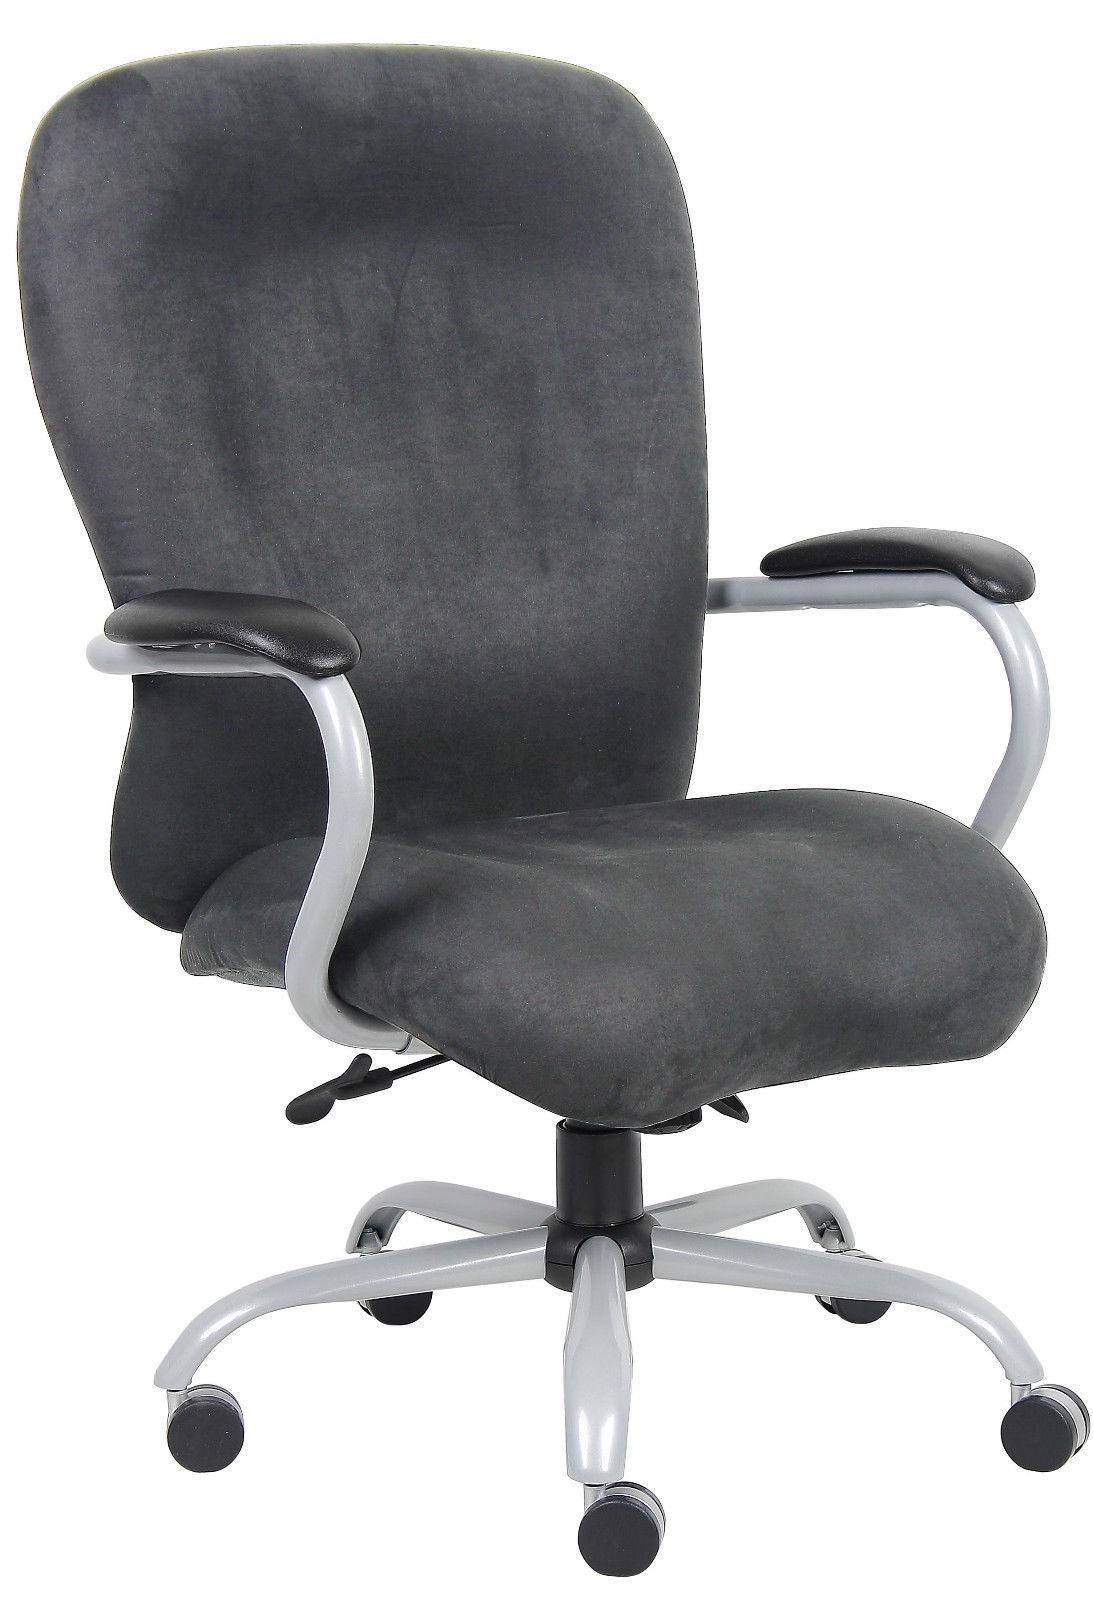 Heavy Duty Office Chair Titan 24 Hr Heavy Duty Executive Operator Office Chair In